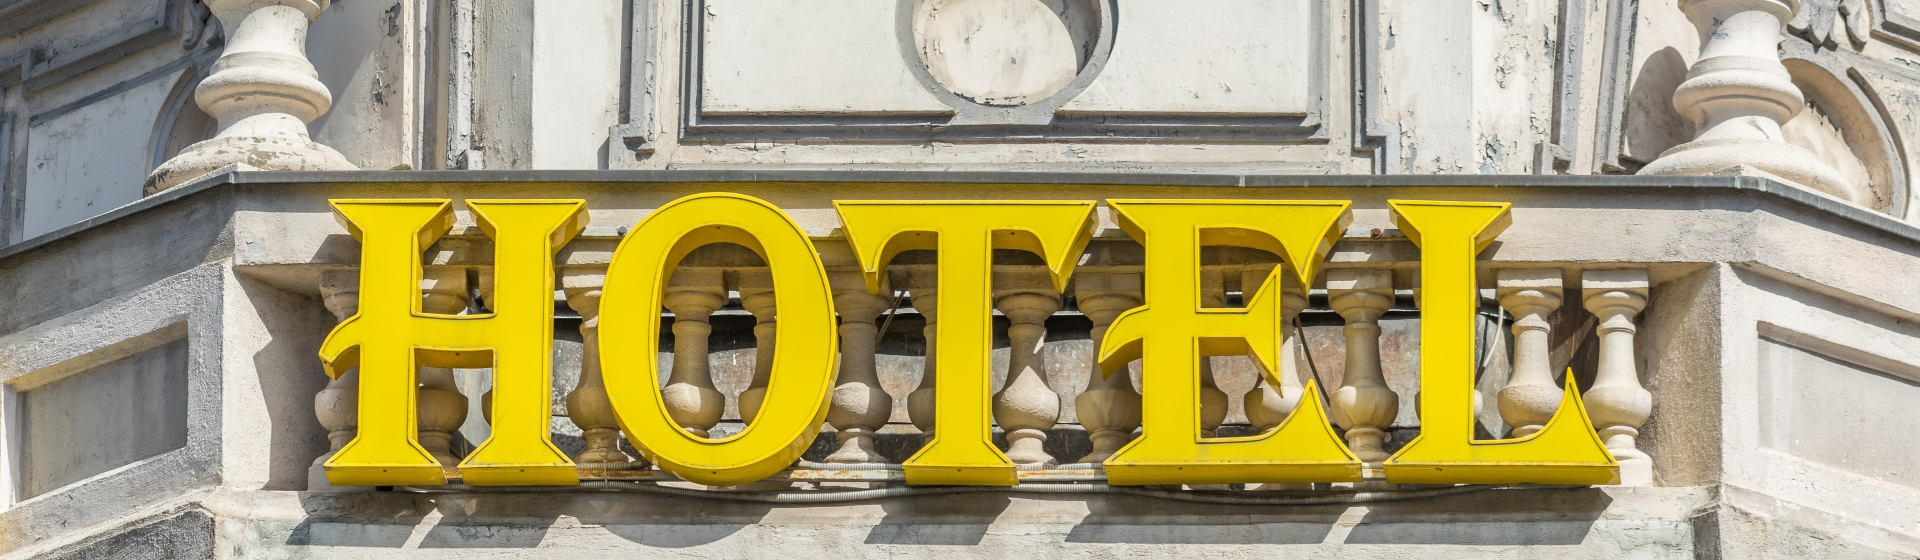 Yellow hotel sign.